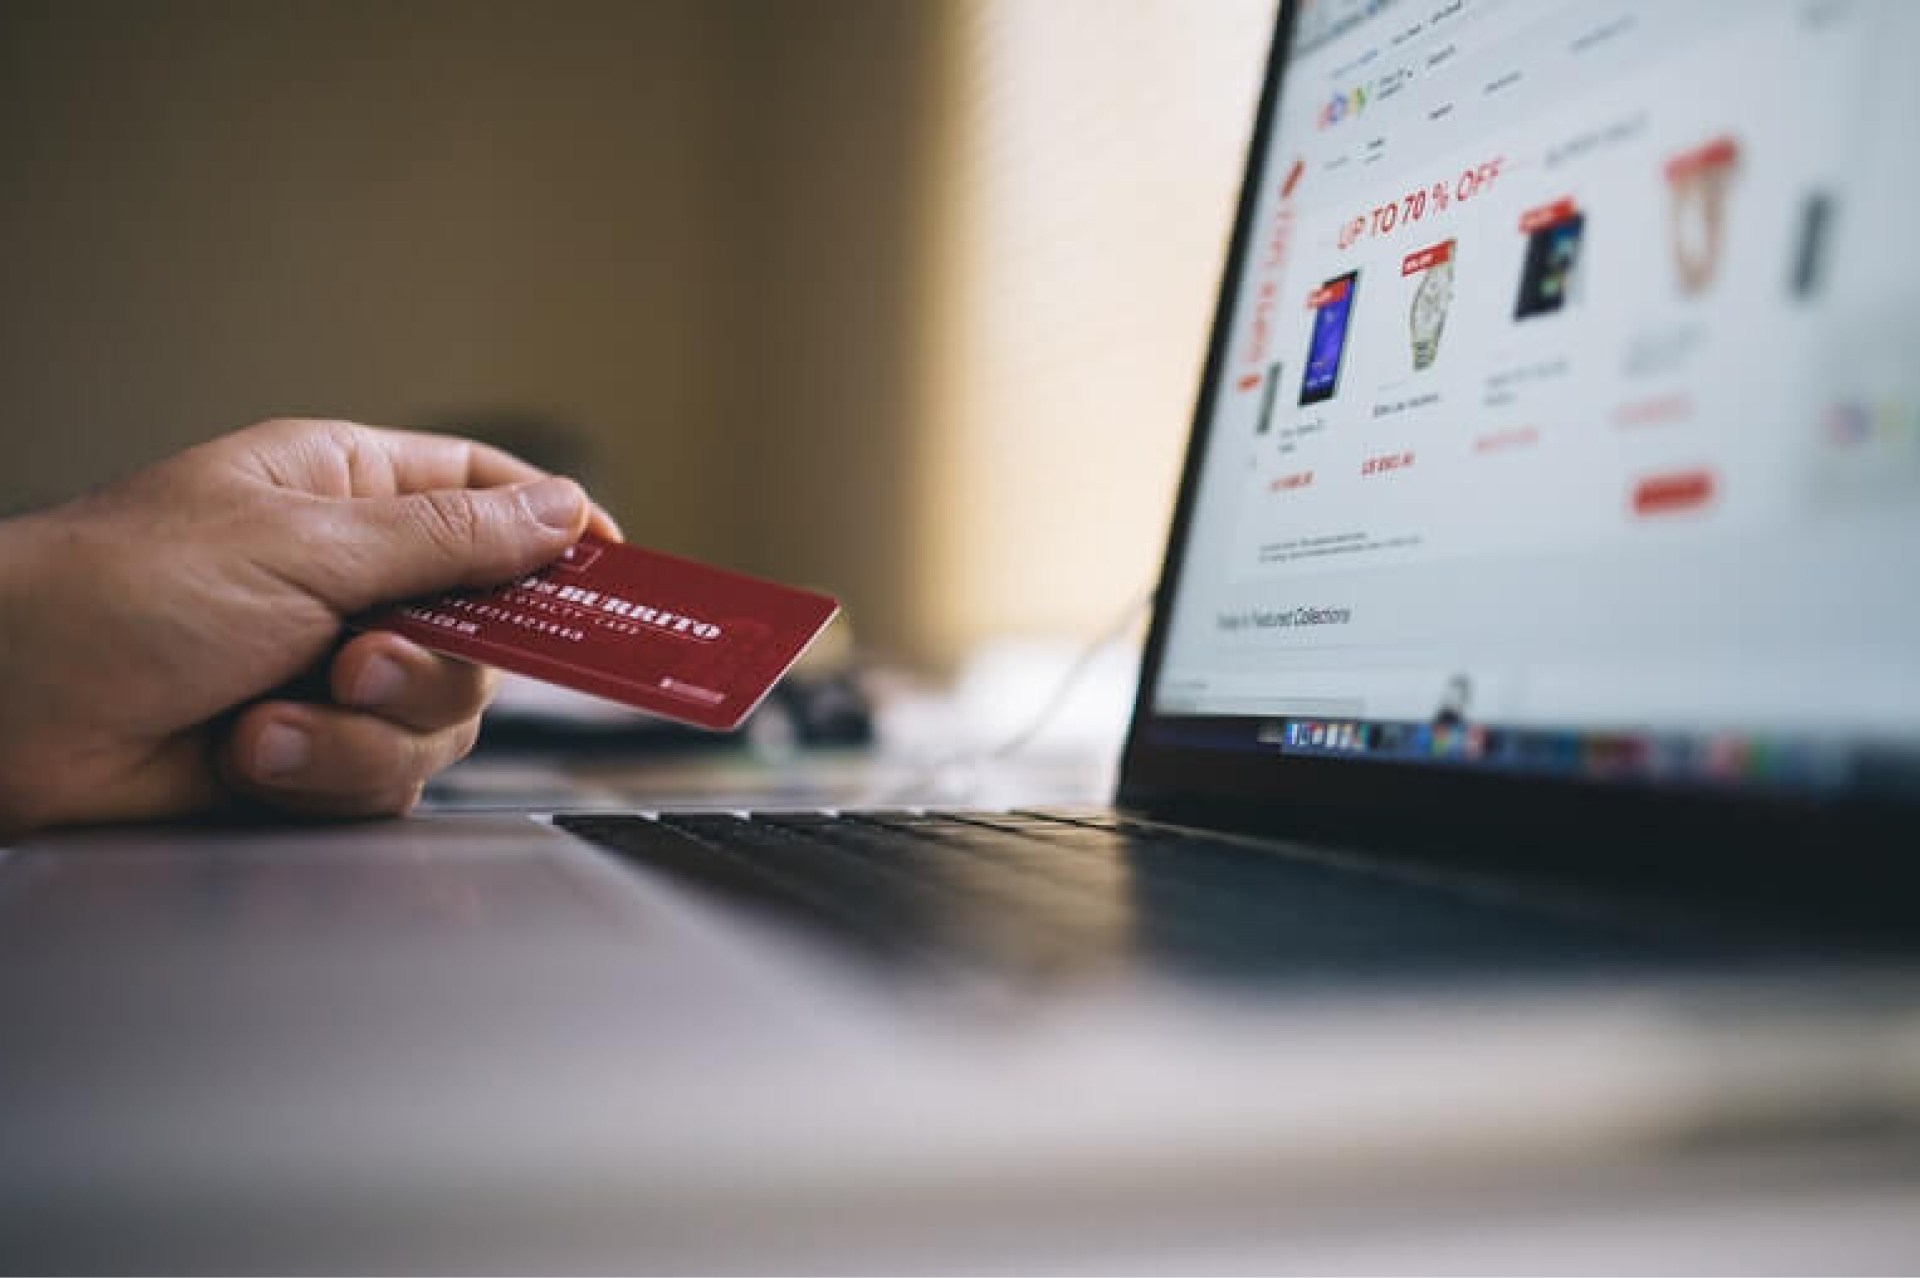 Ecommerce: Intermediary's liabilities and duties